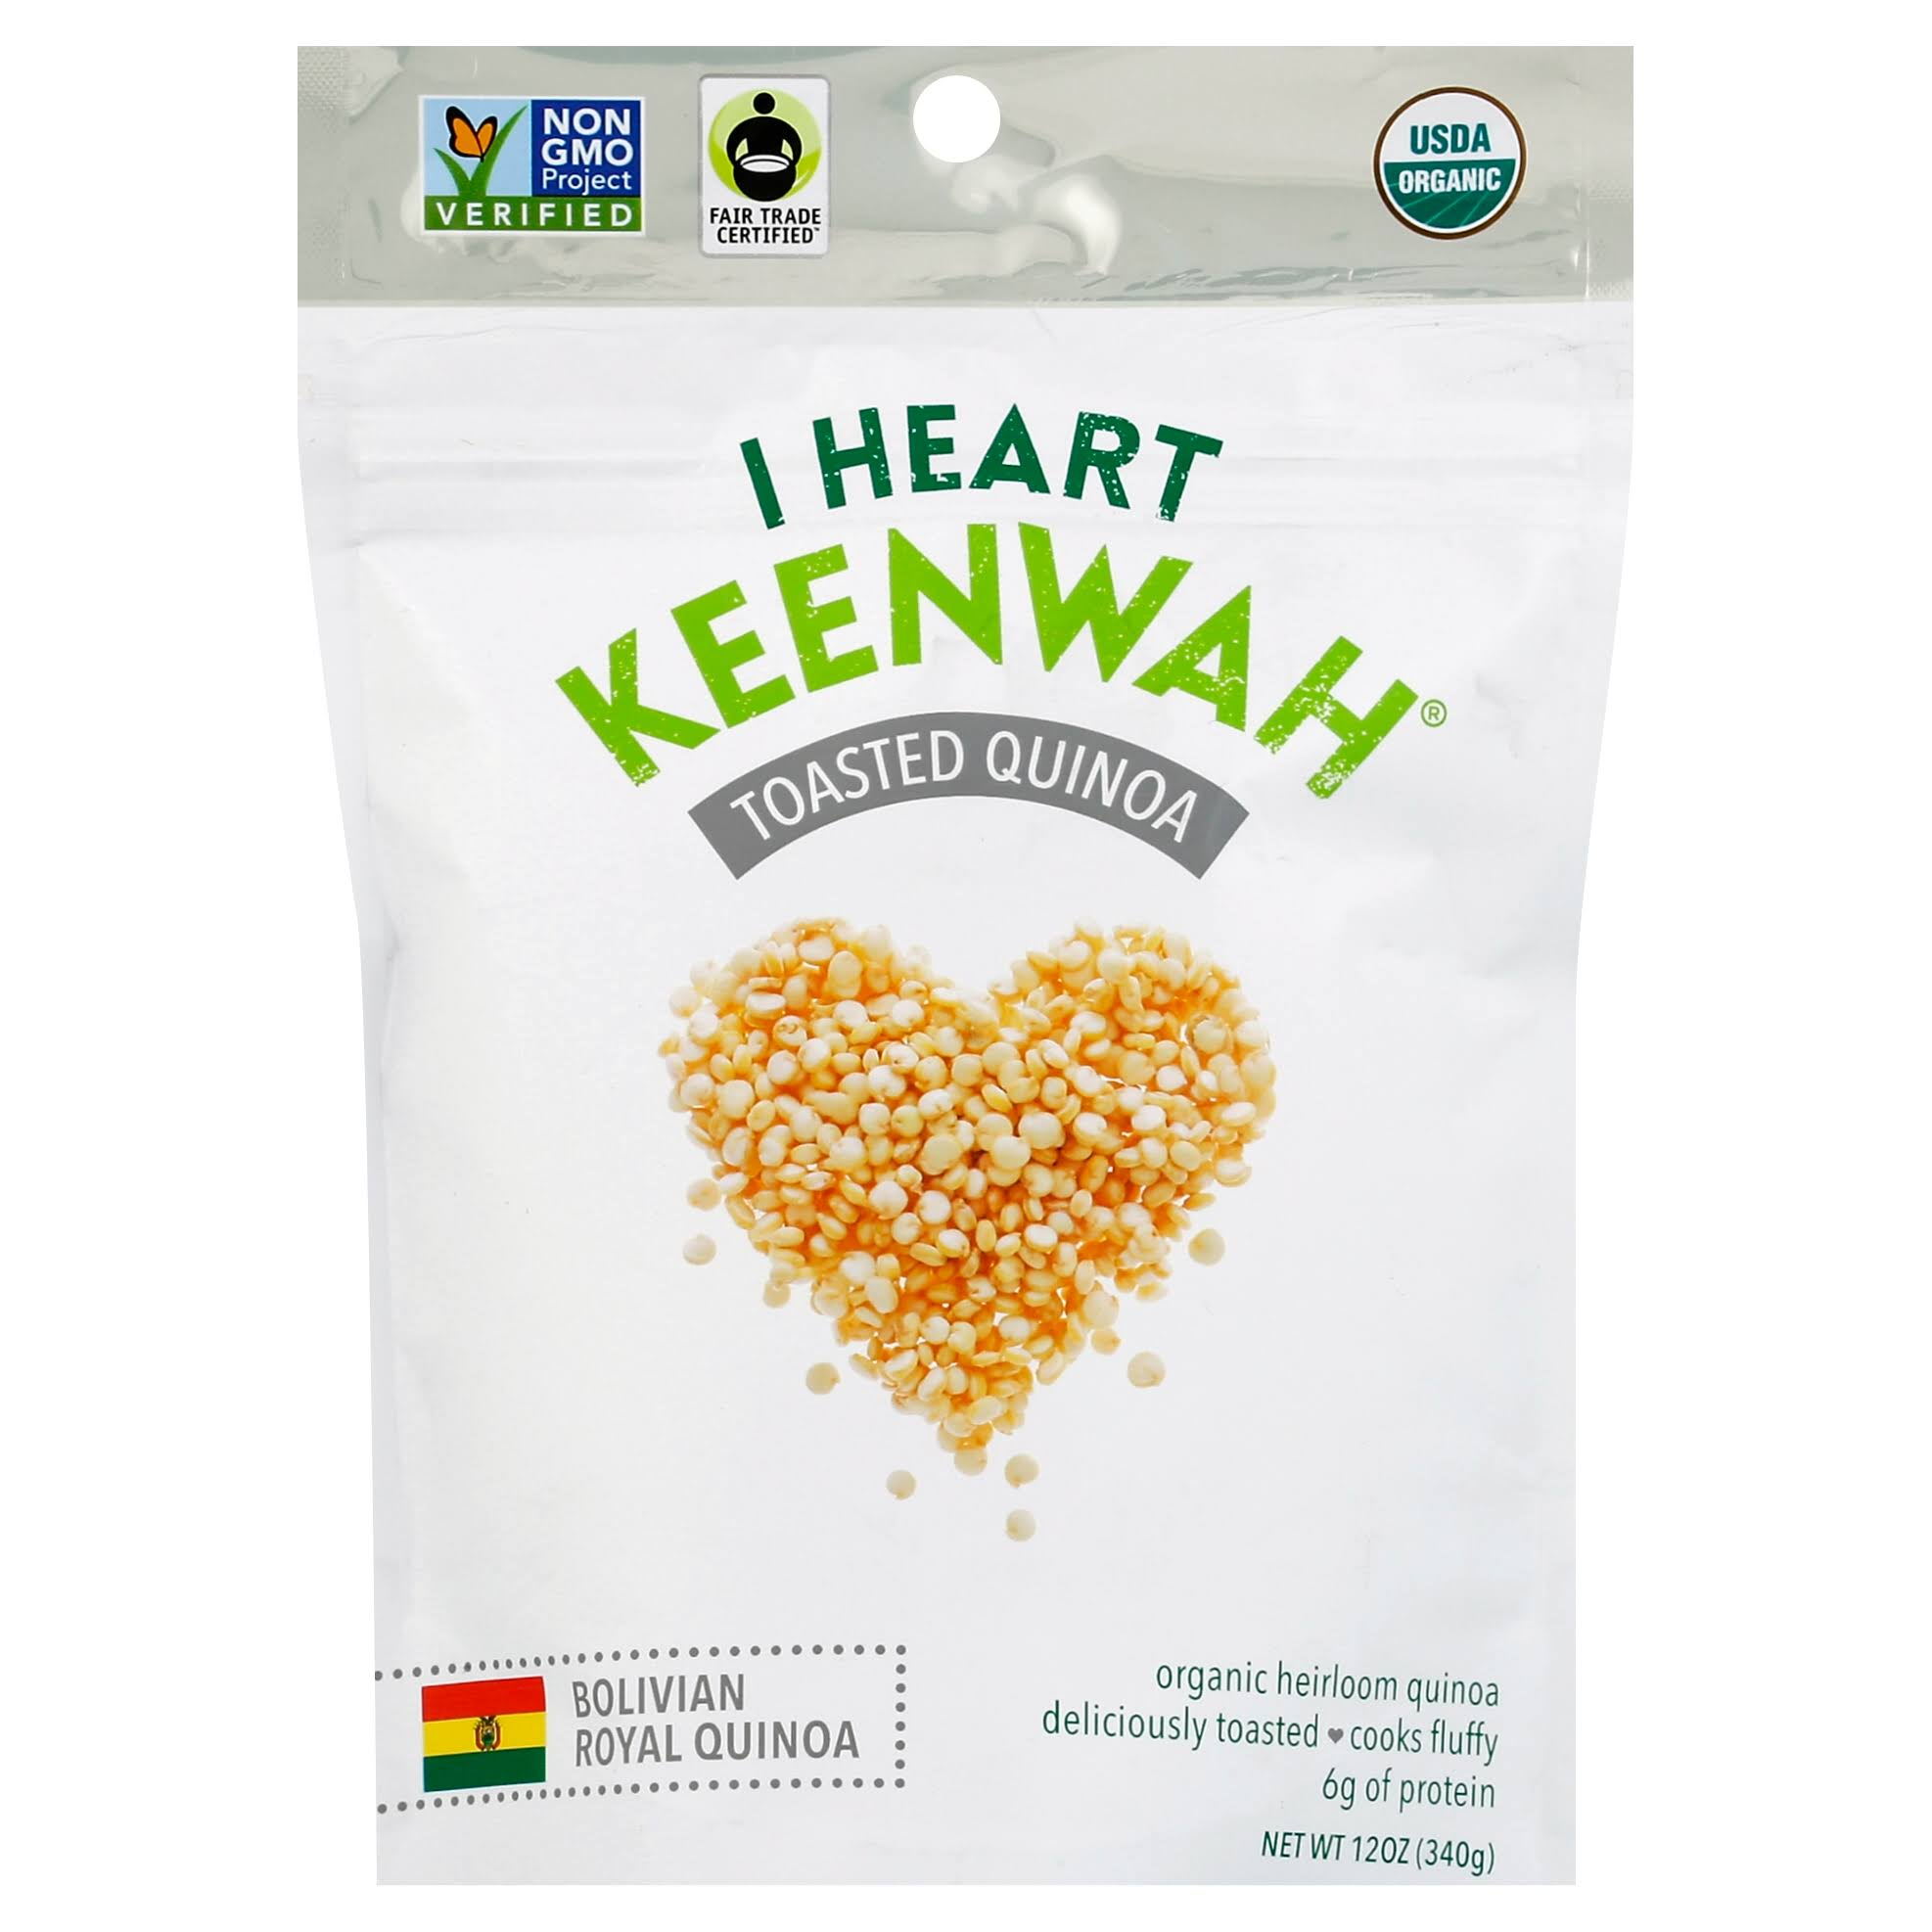 I Heart Keenwah Toasted Quinoa - White, 12oz, 6 Pack